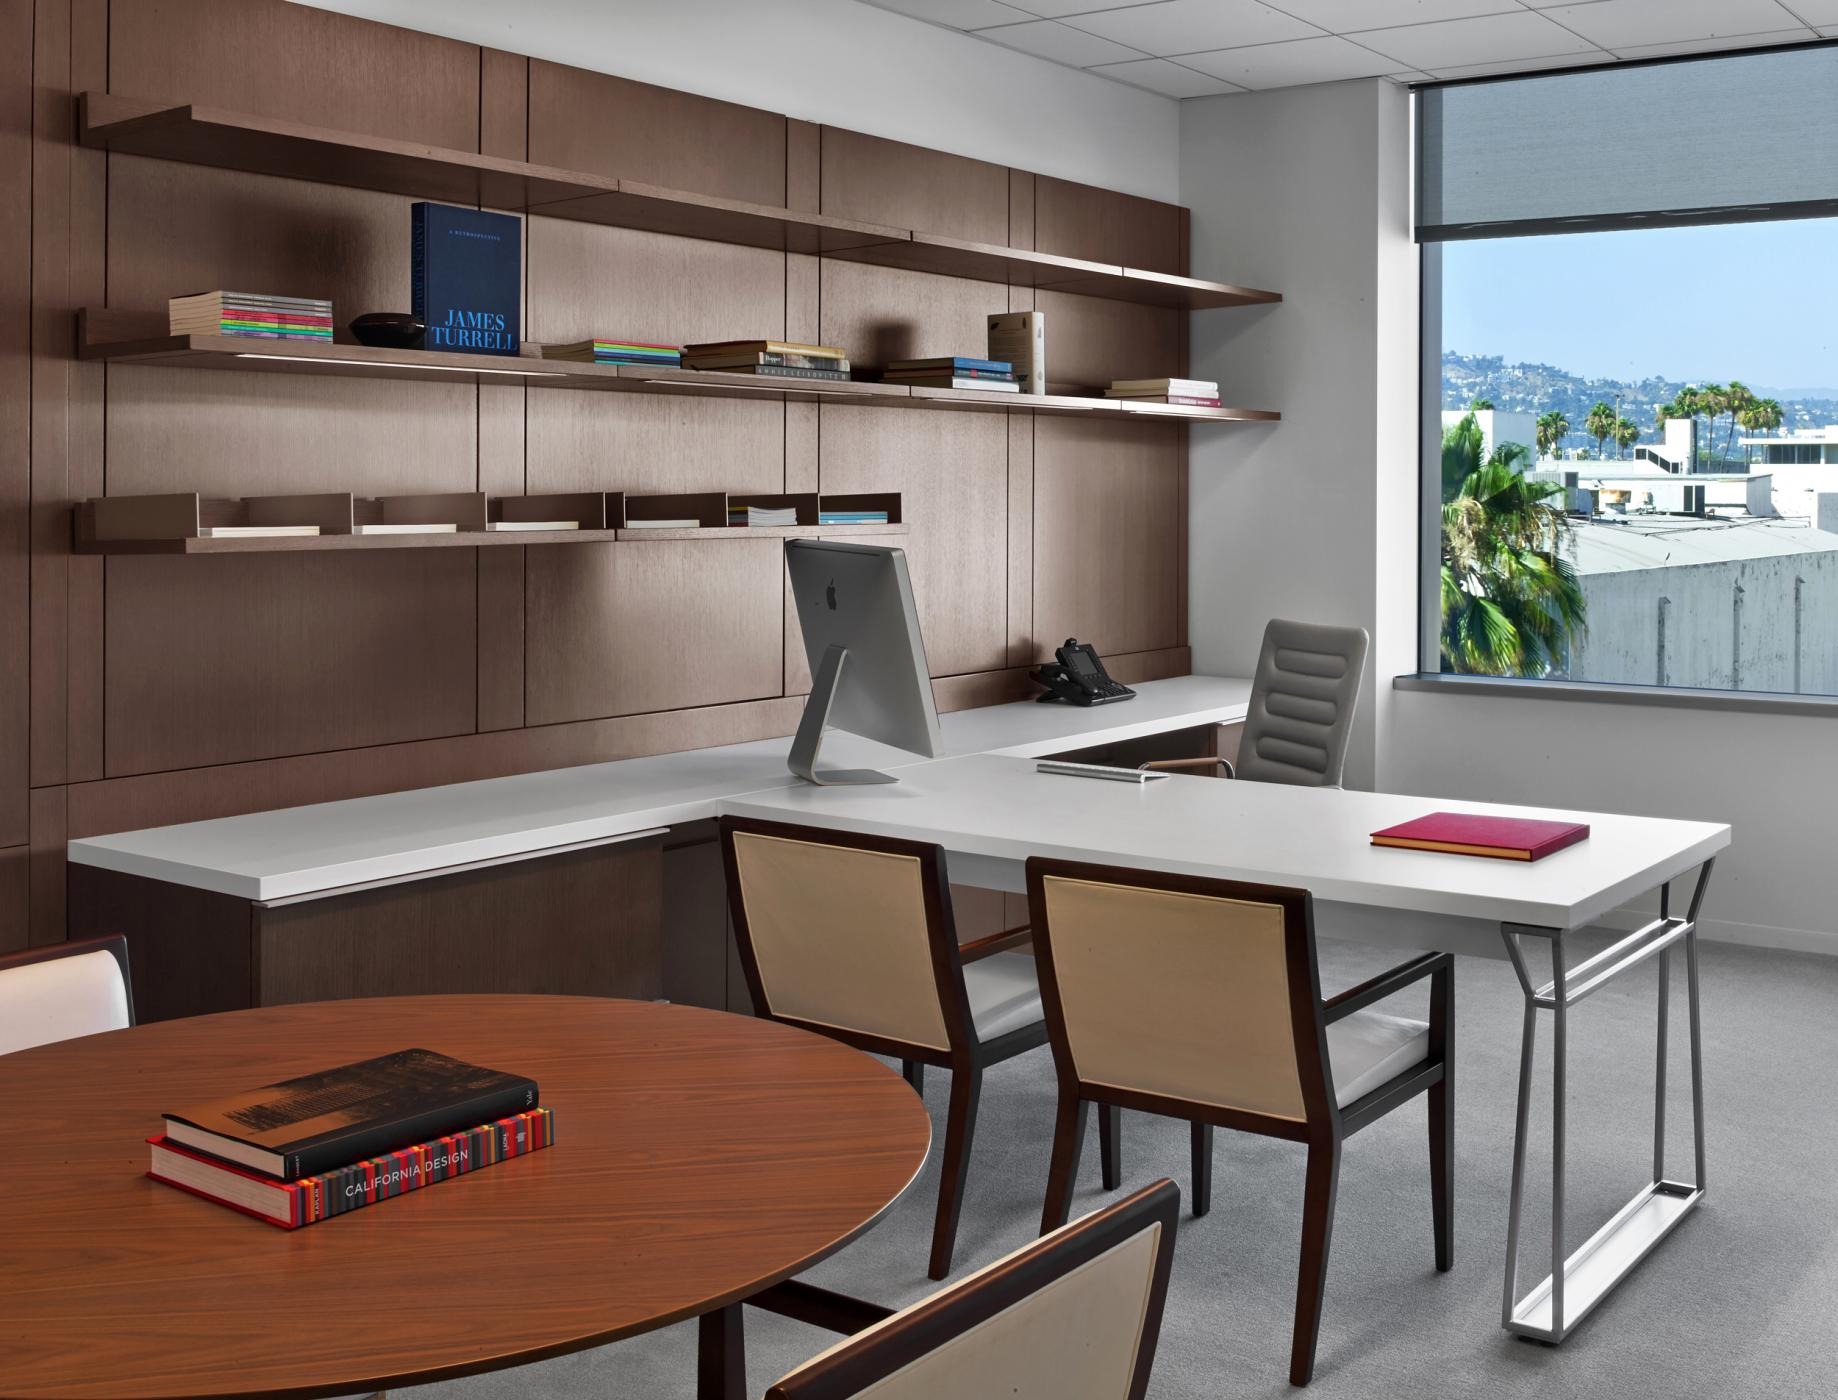 Private offices feature rift oak workwalls, Smoky White laminate surfaces, and brushed aluminum hardware.